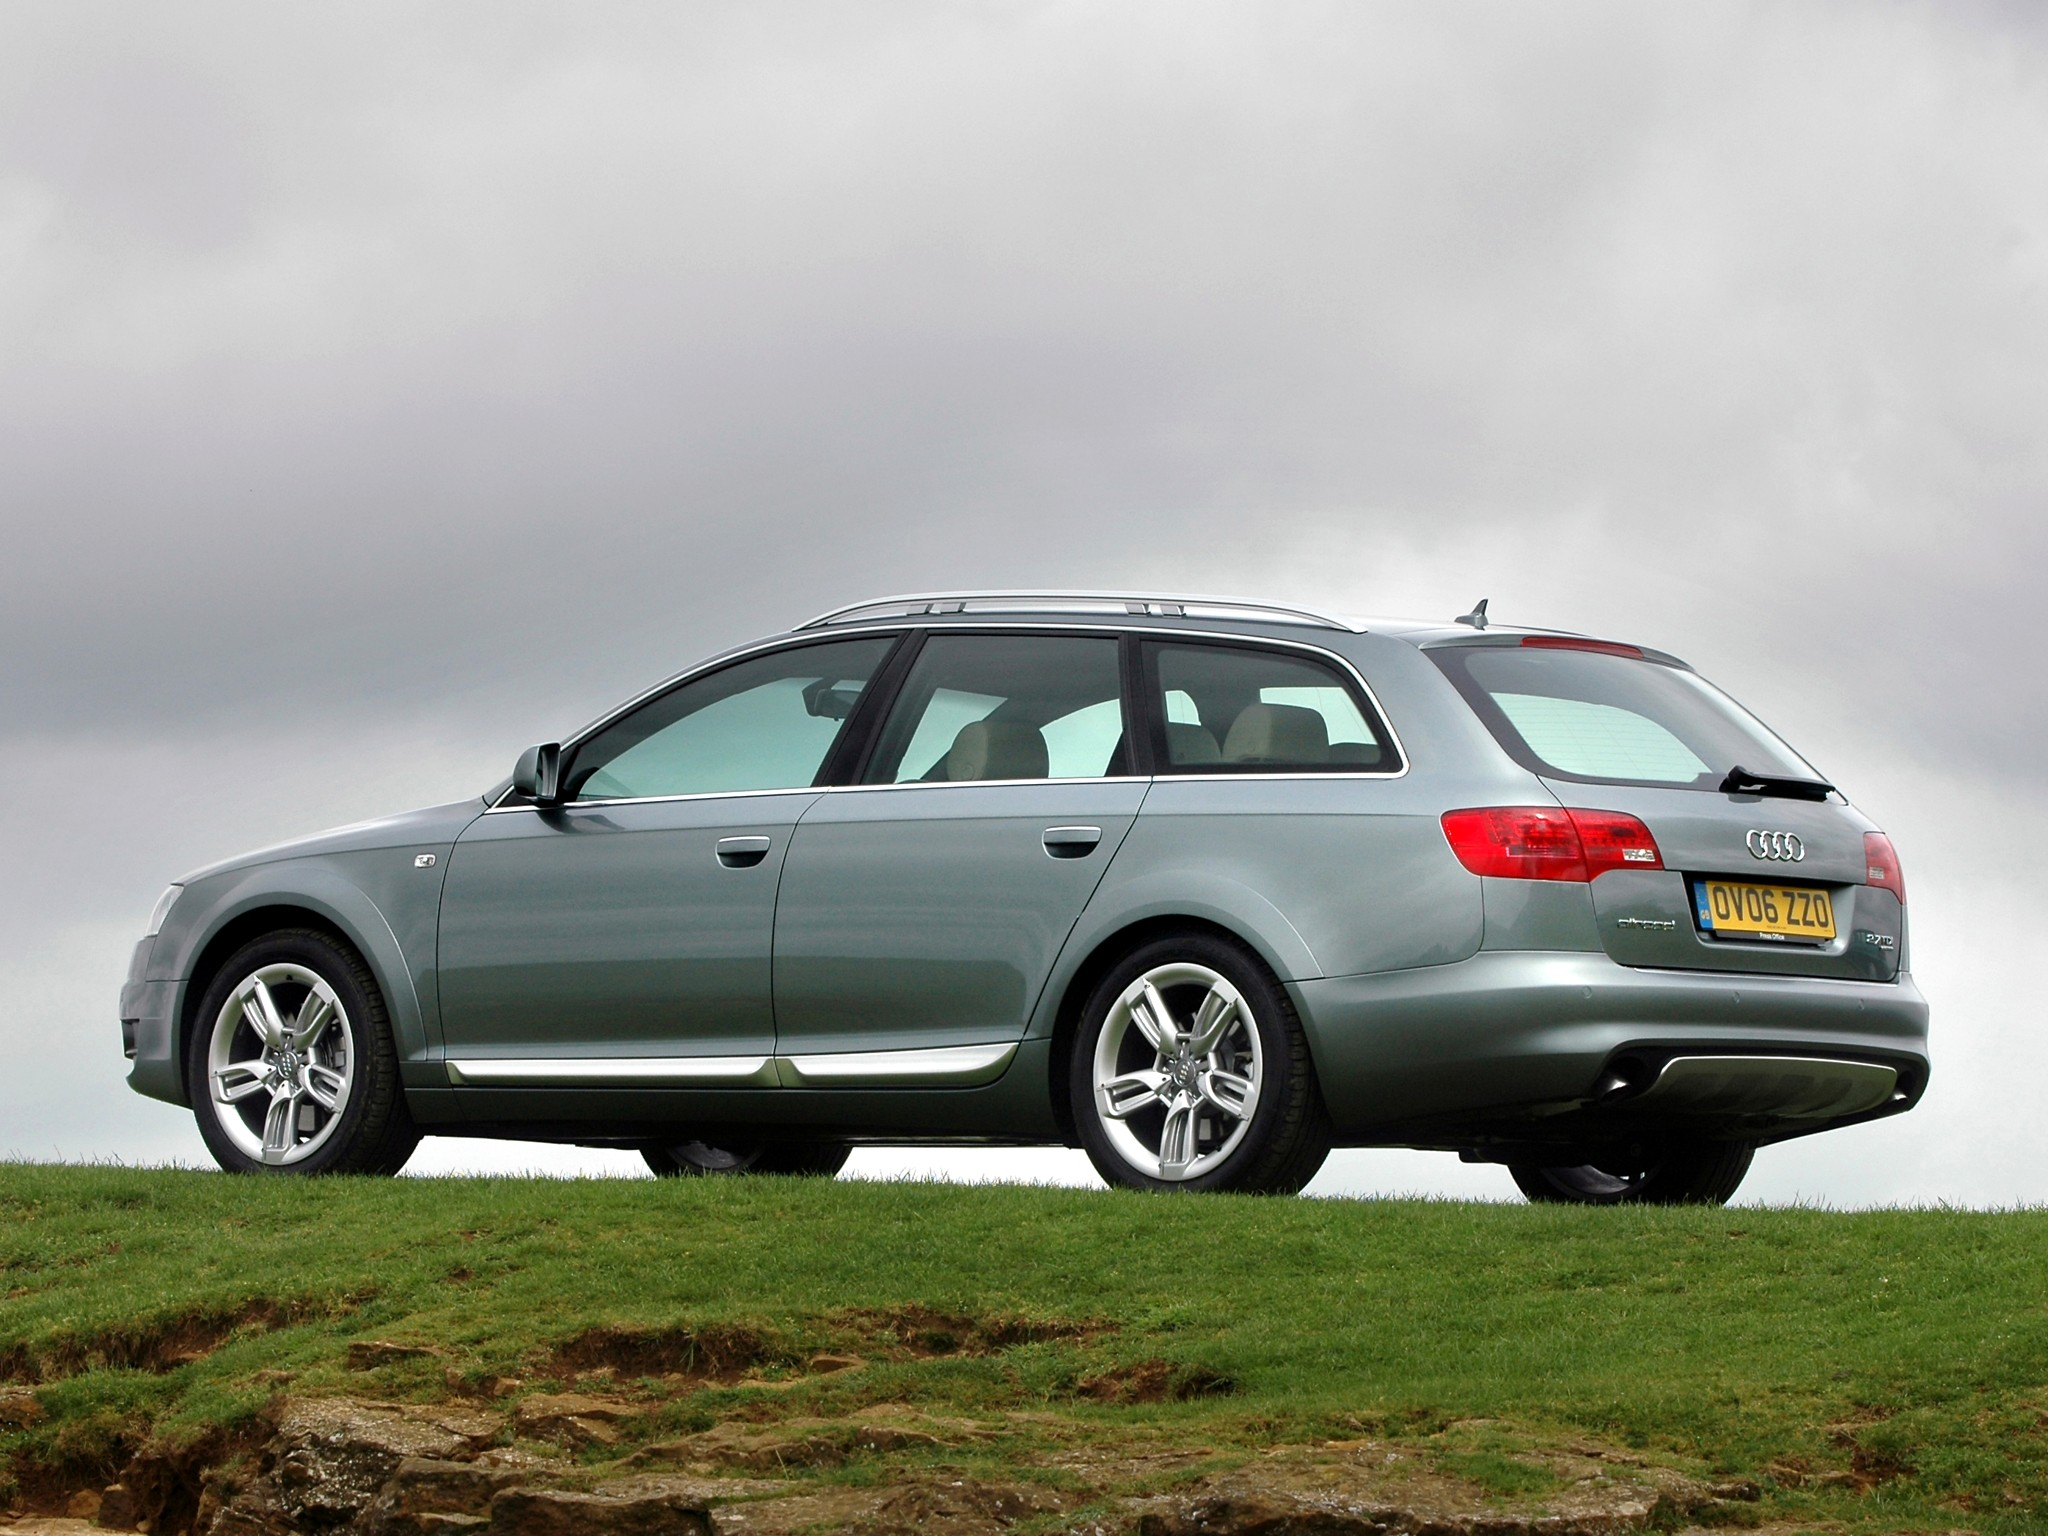 Audi Rs7 2011 >> AUDI A6 Allroad specs & photos - 2006, 2007, 2008, 2009, 2010, 2011 - autoevolution